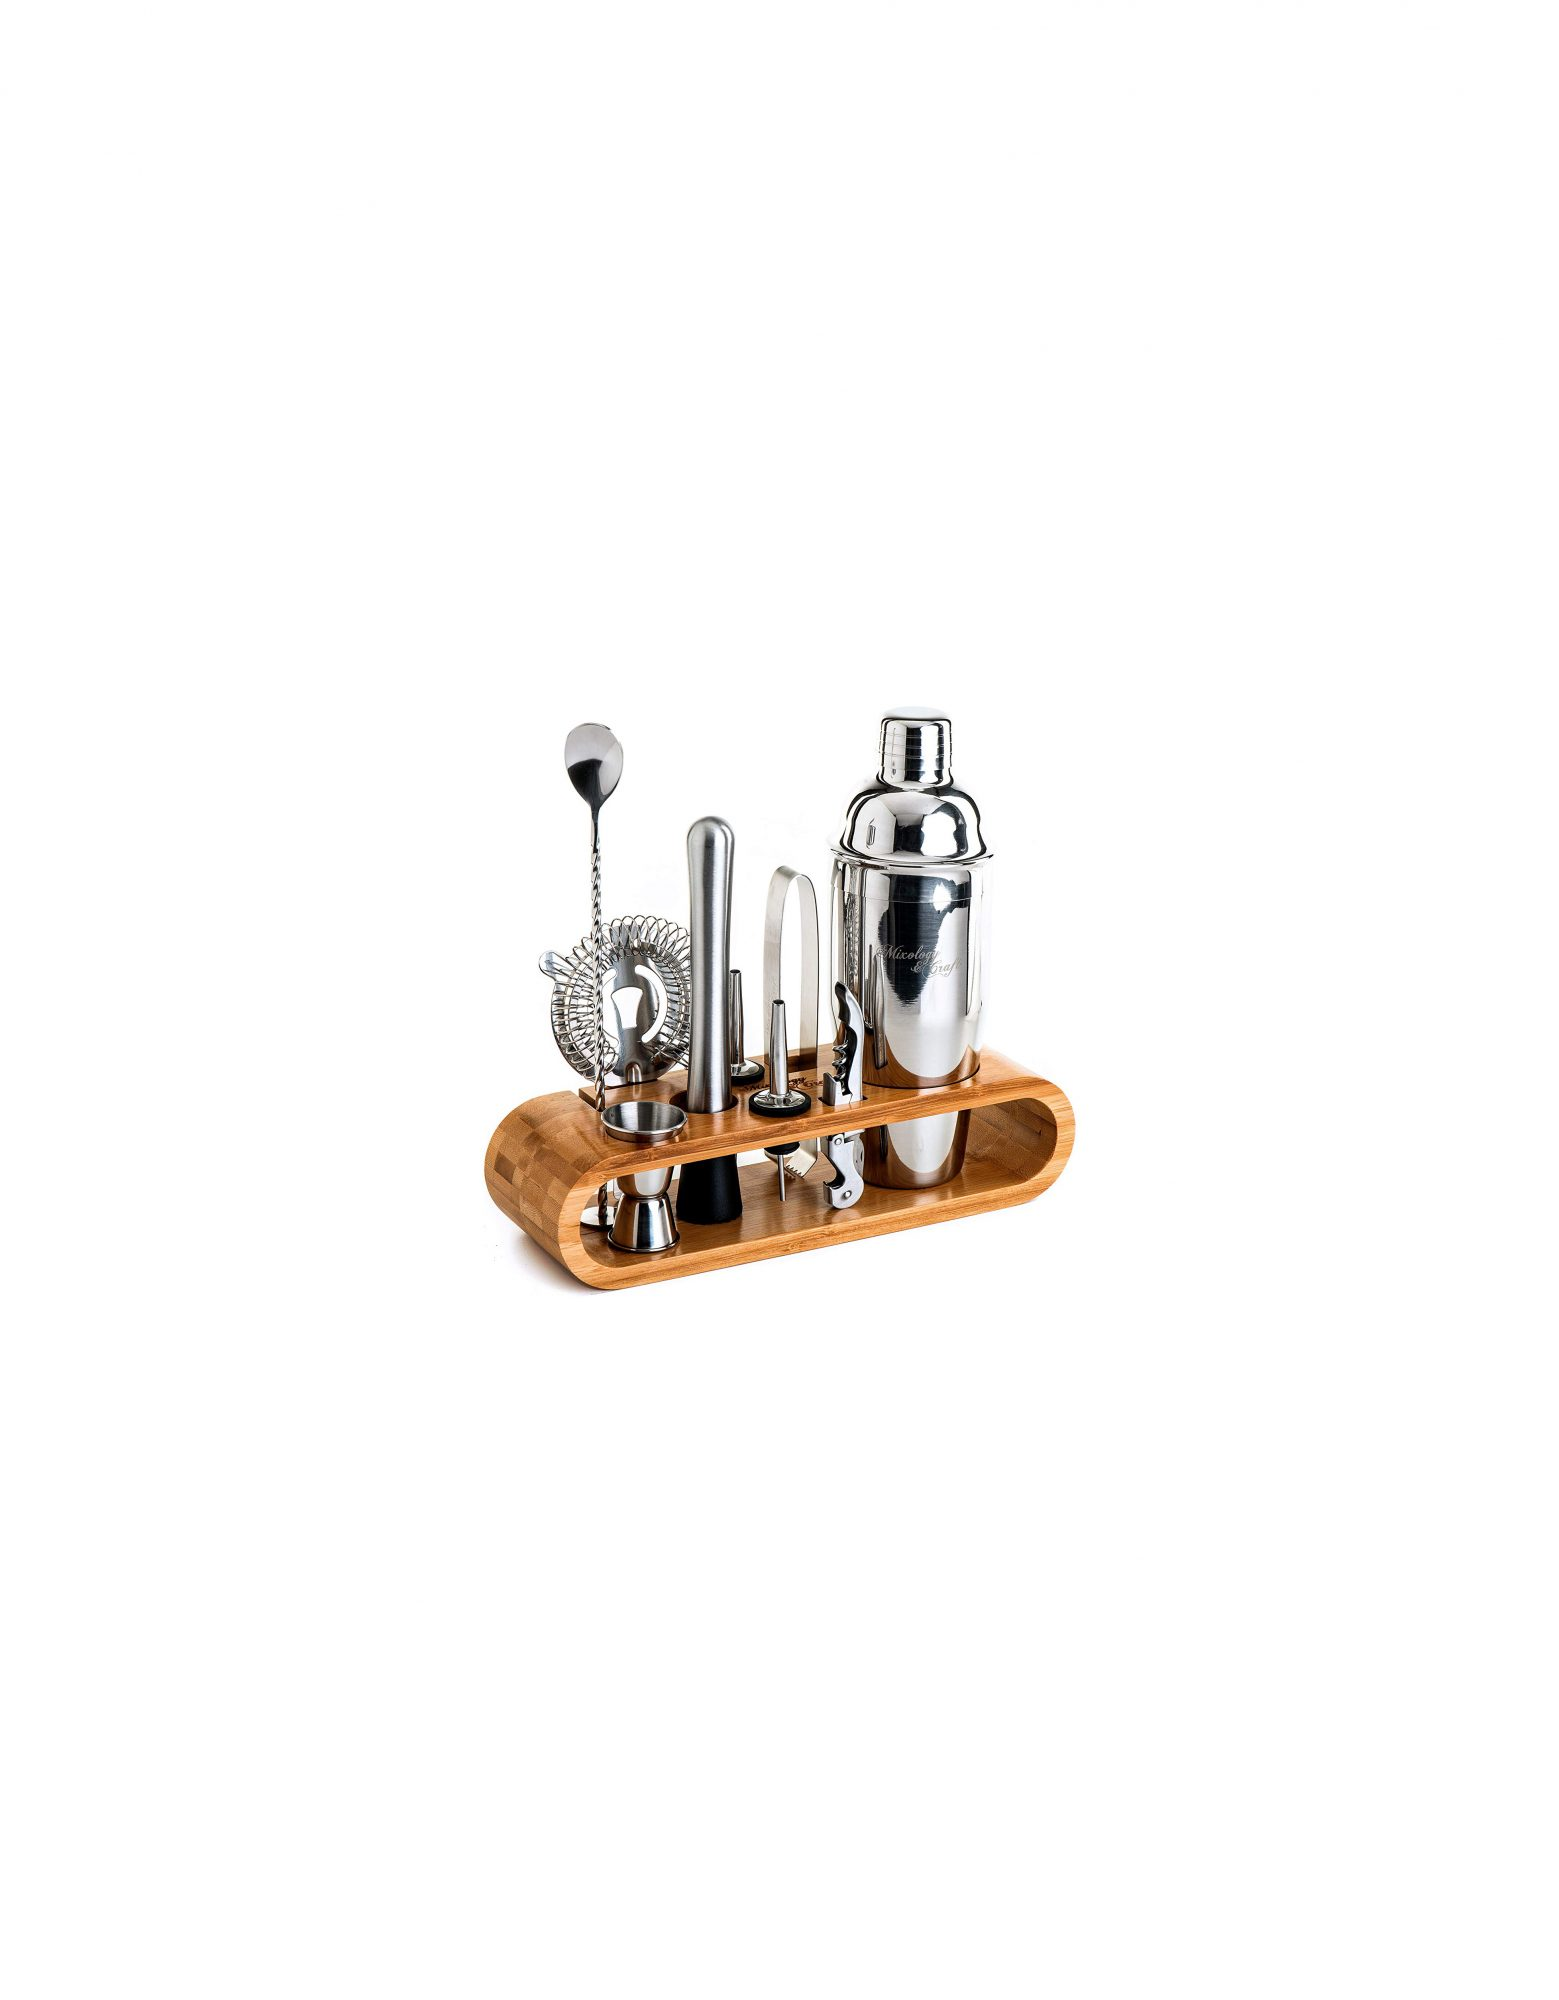 Gift Ideas for Men: Bartender Kit on Amazon